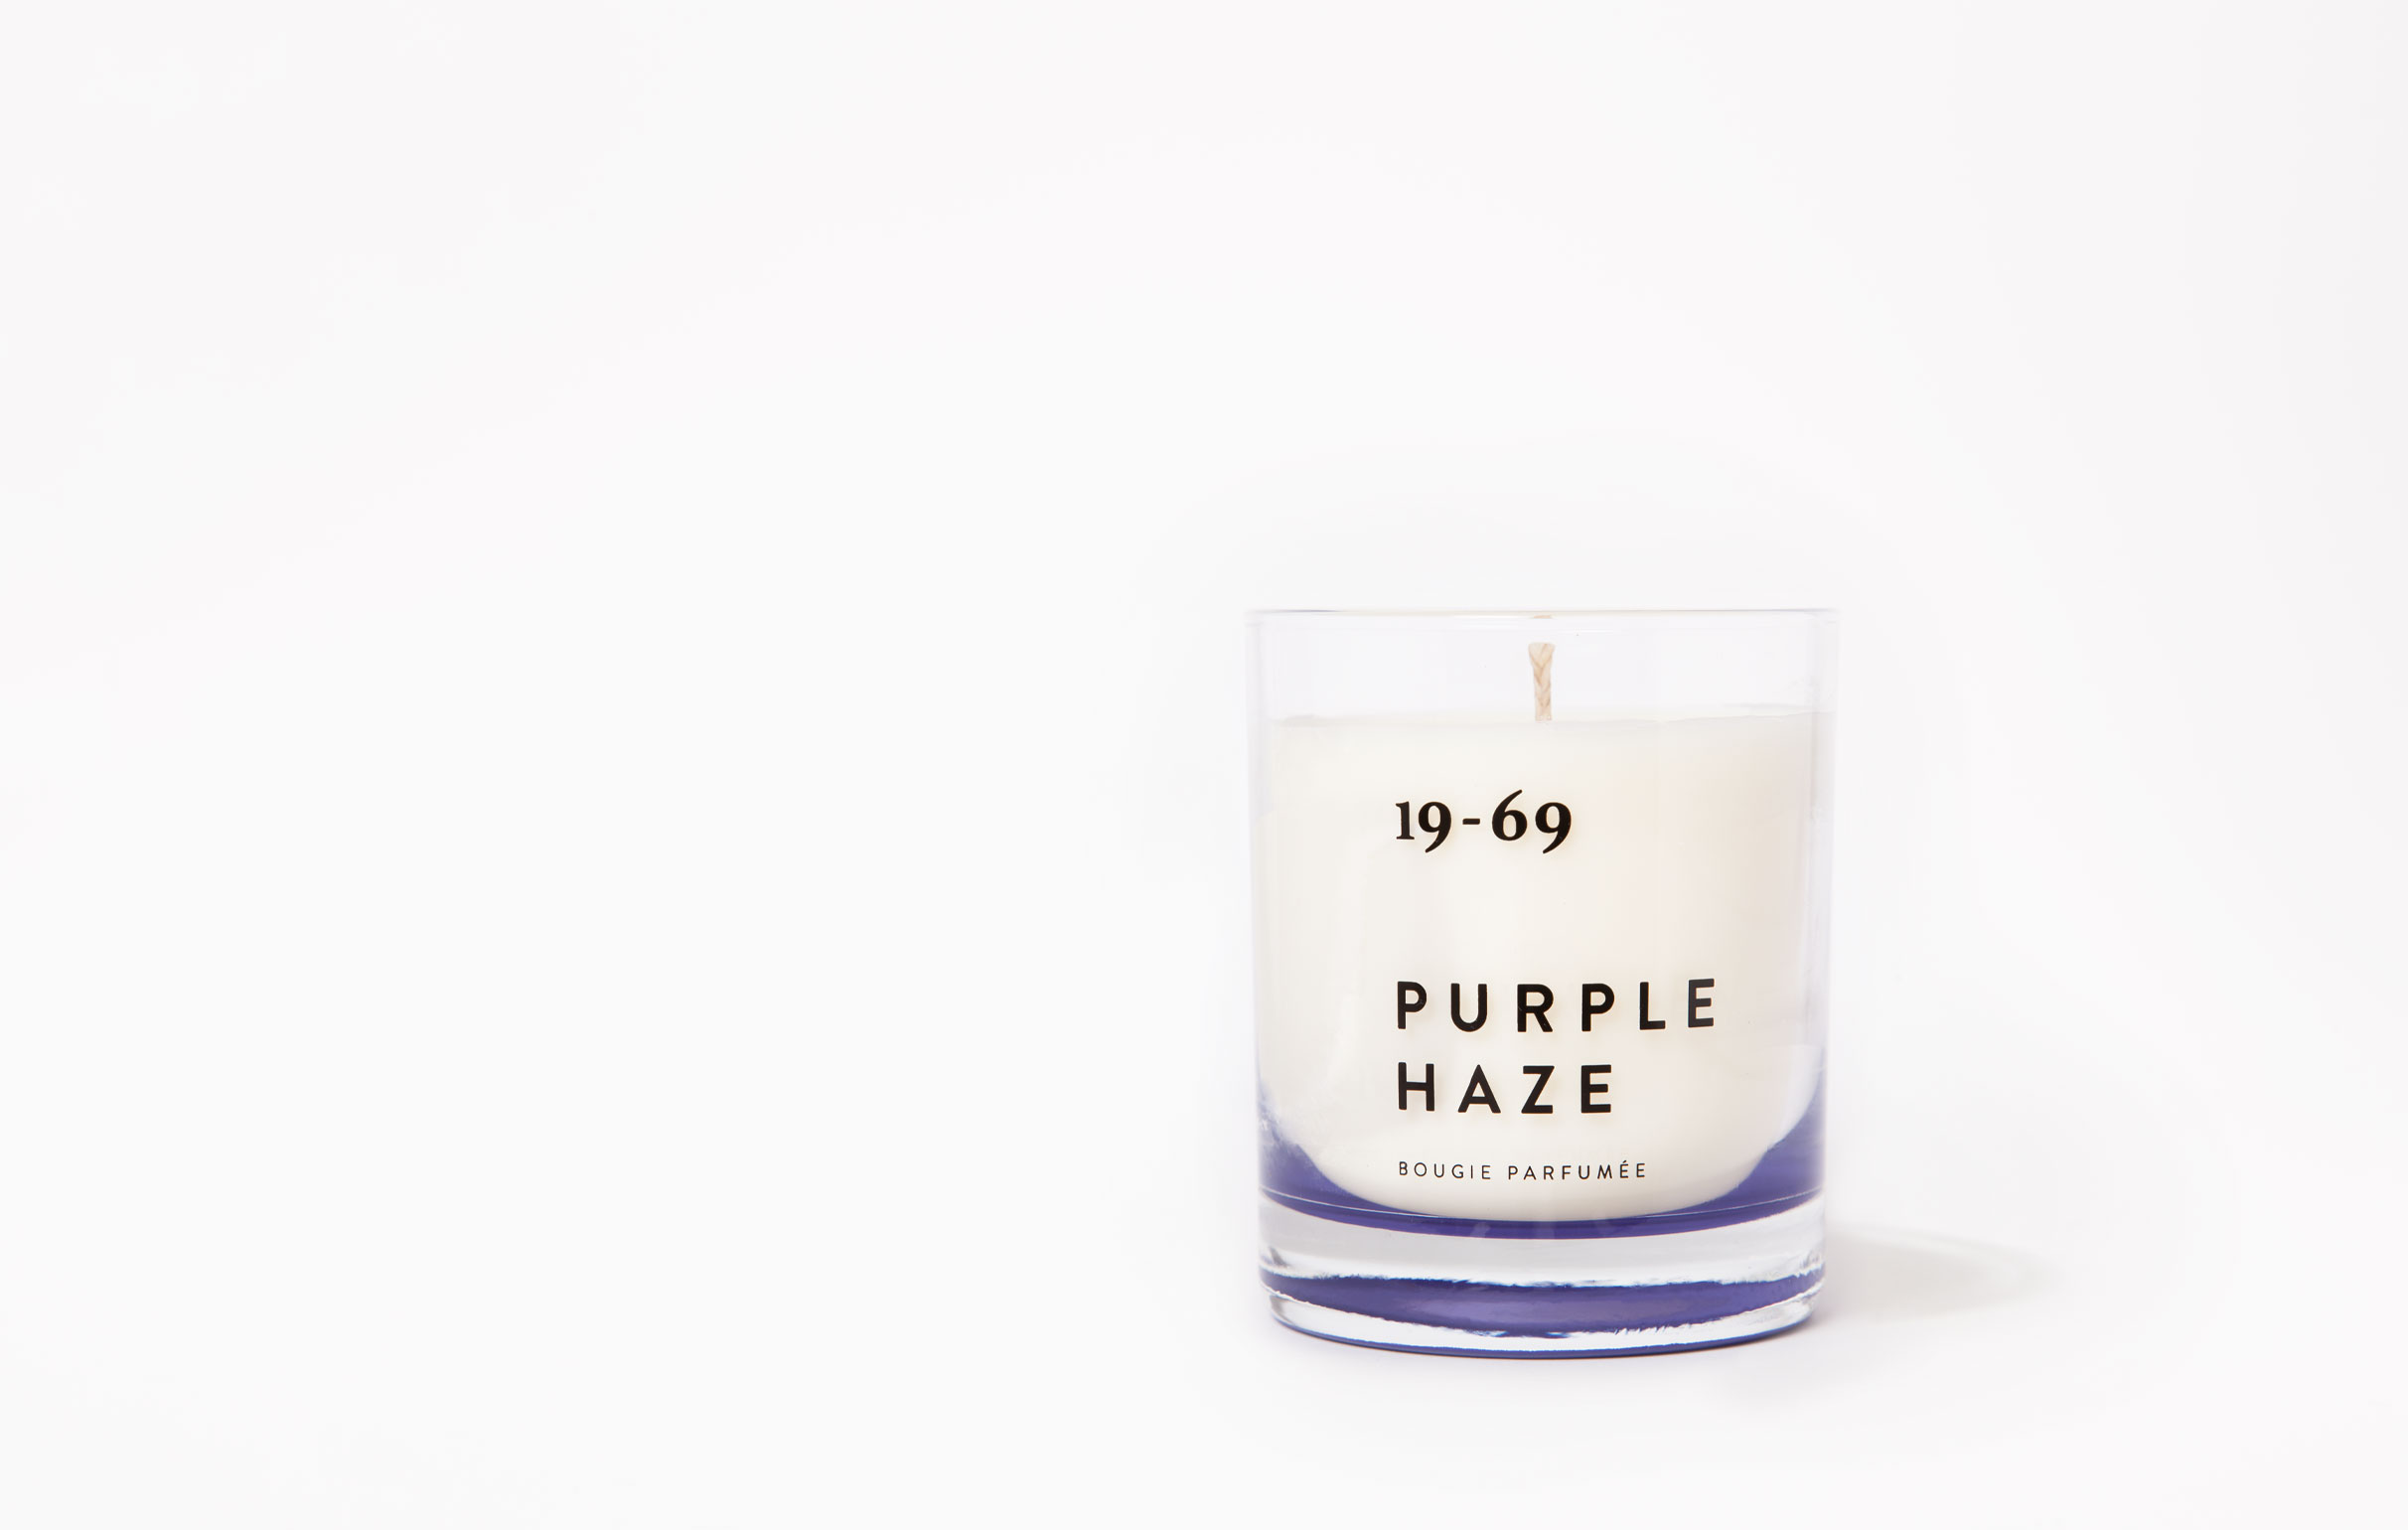 19-69 Purple Haze Bougie Parfumée 200ml